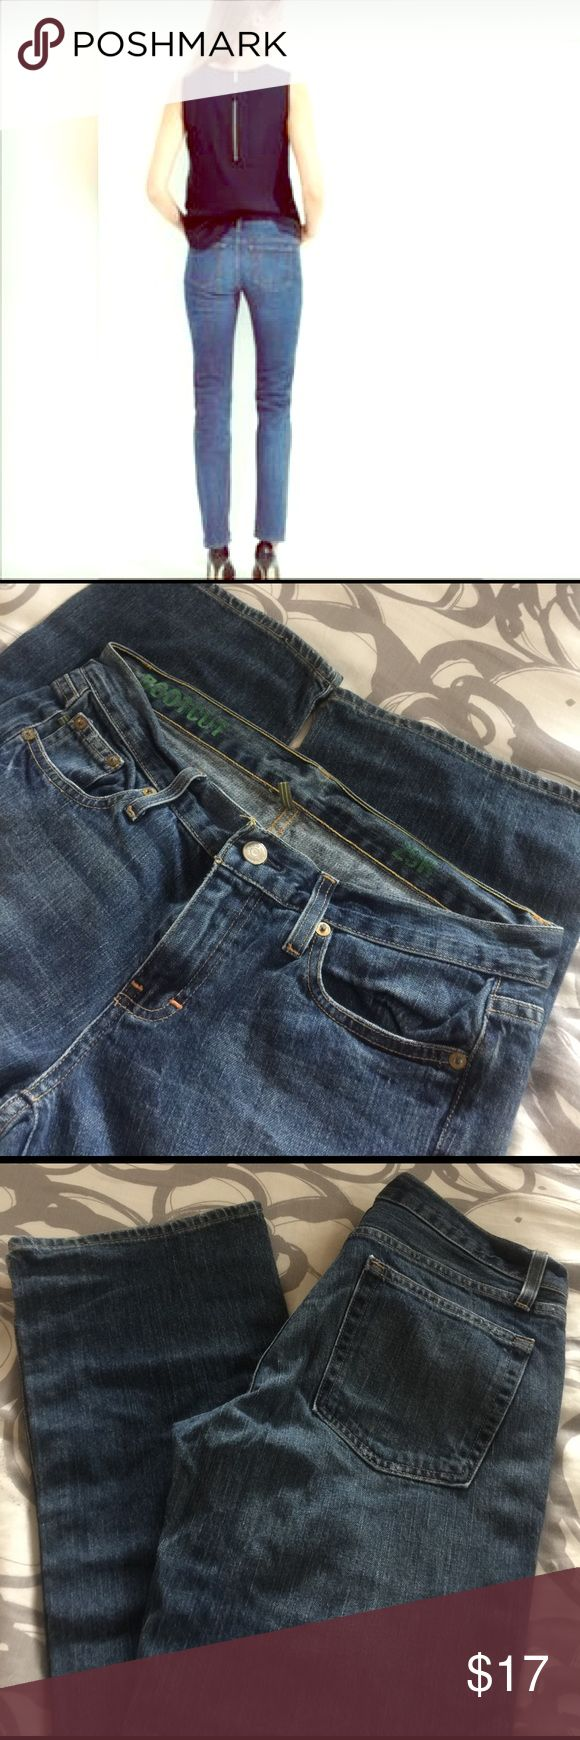 """Lk new J Crew jeans 29 bootcut, slimming J Crew jeans, size 8/29, inseam 31."""". Like new condition. J. Crew Jeans Boot Cut"""